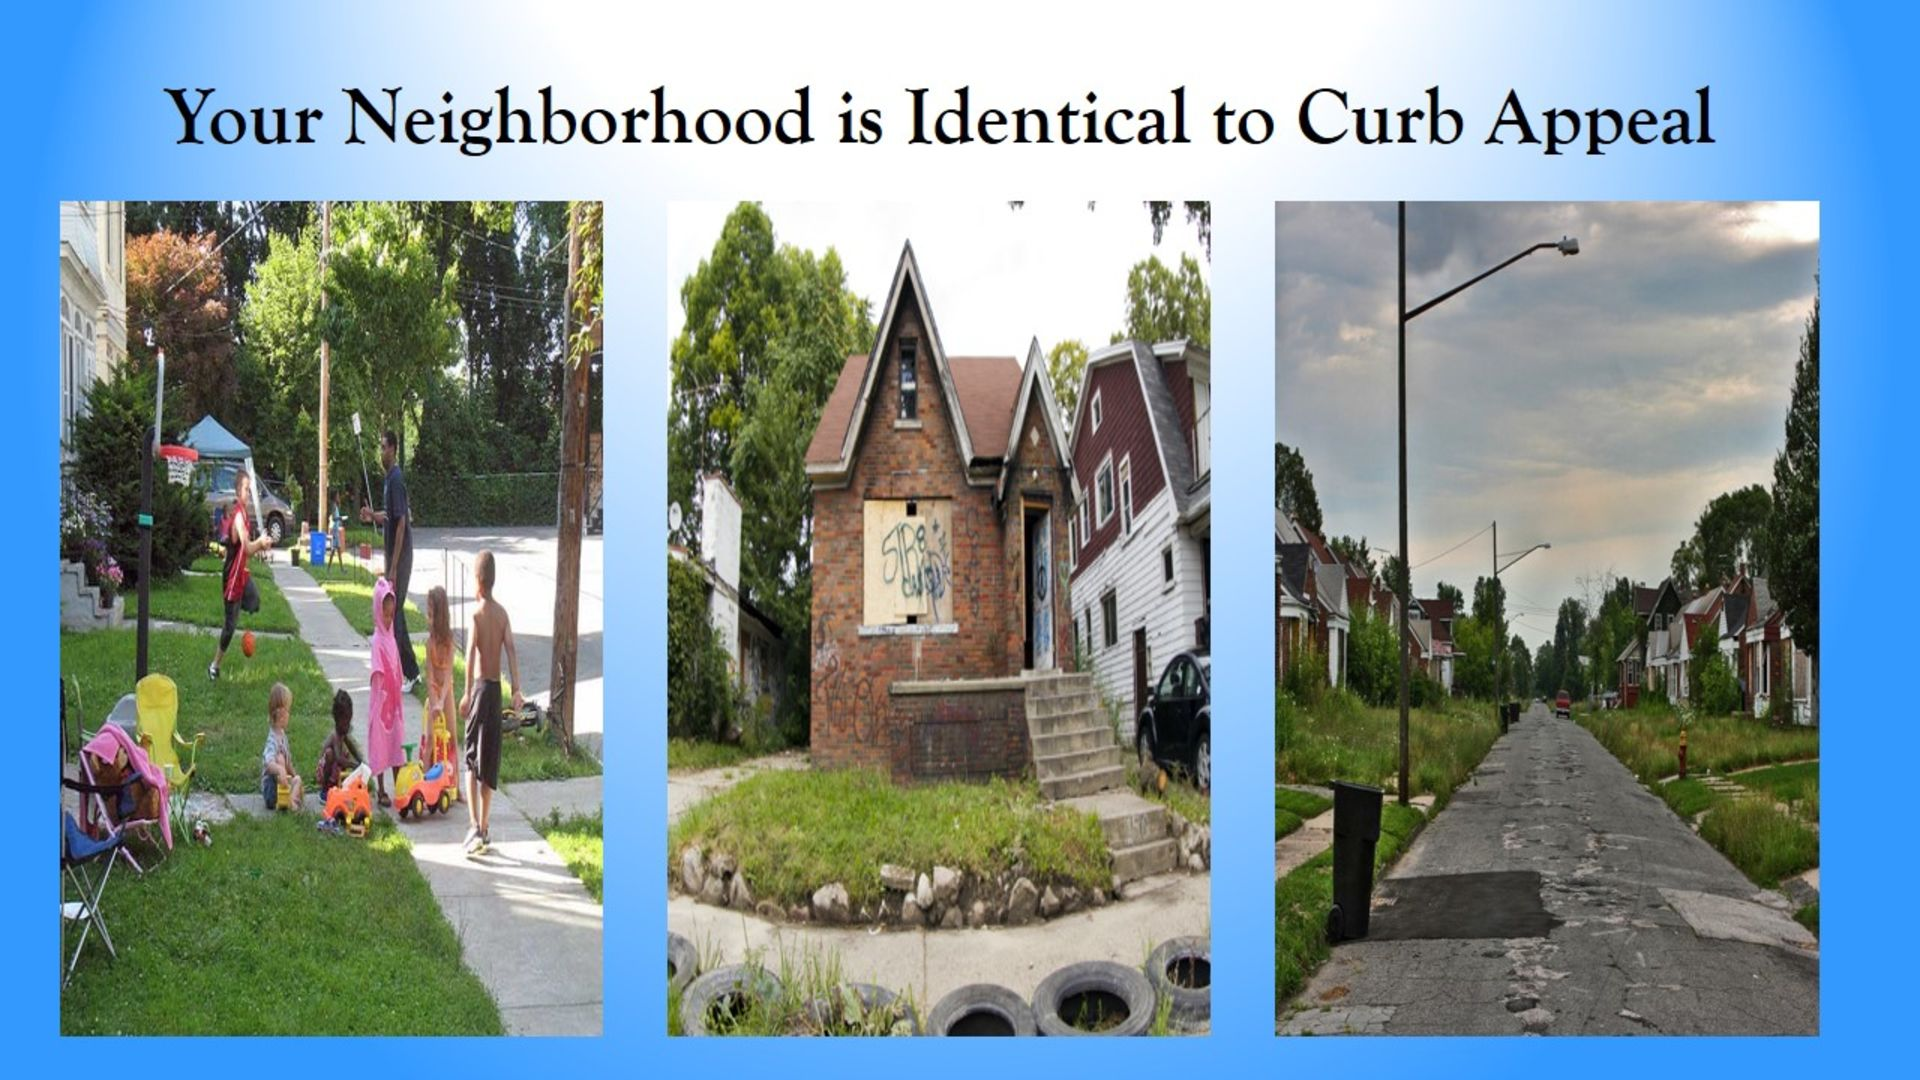 Your Neighborhood is Identical to Curb Appeal